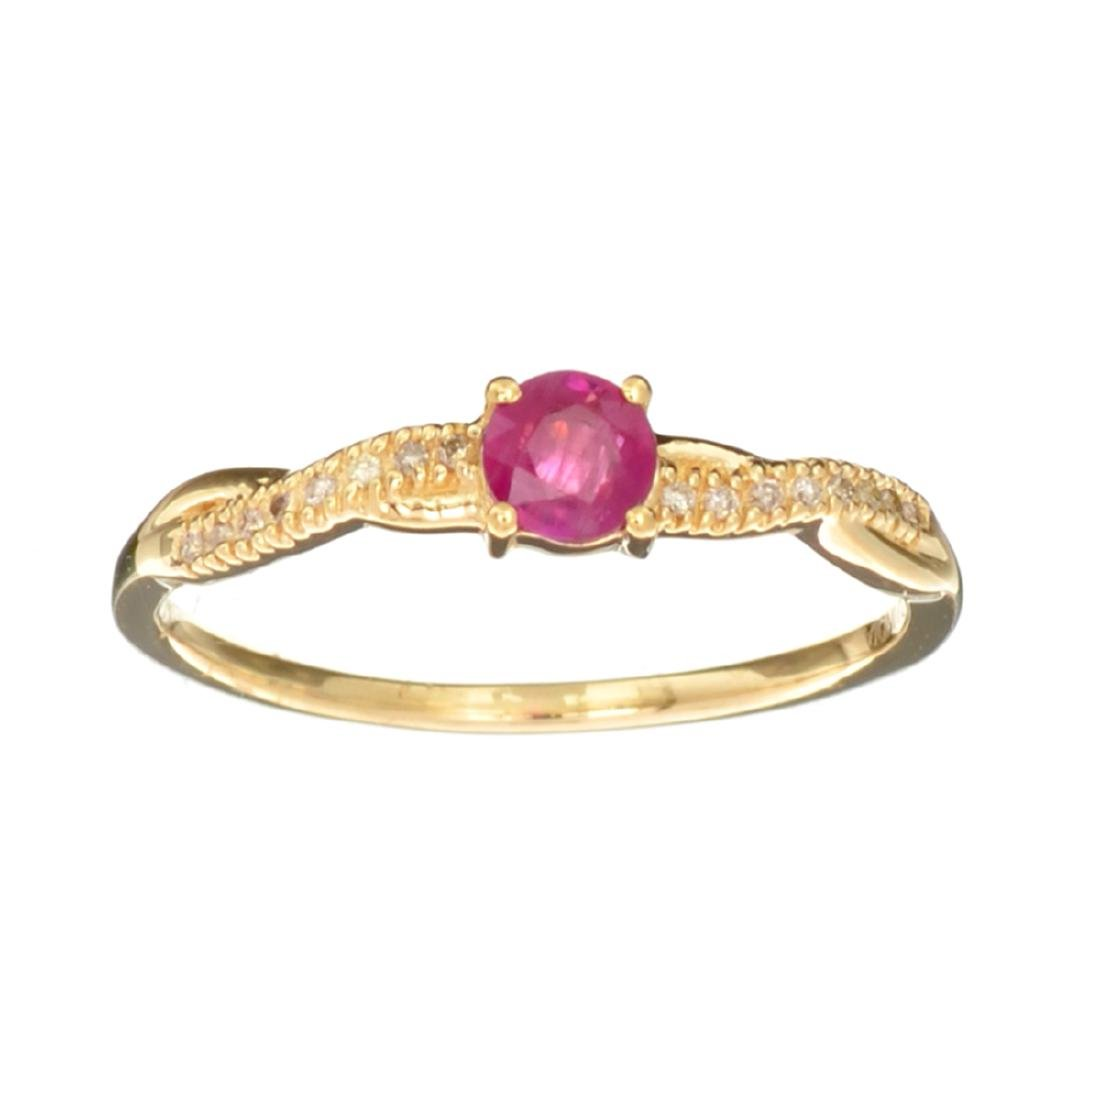 Designer Sebastian 14 KT Gold 0.43CT Round Cut Ruby and